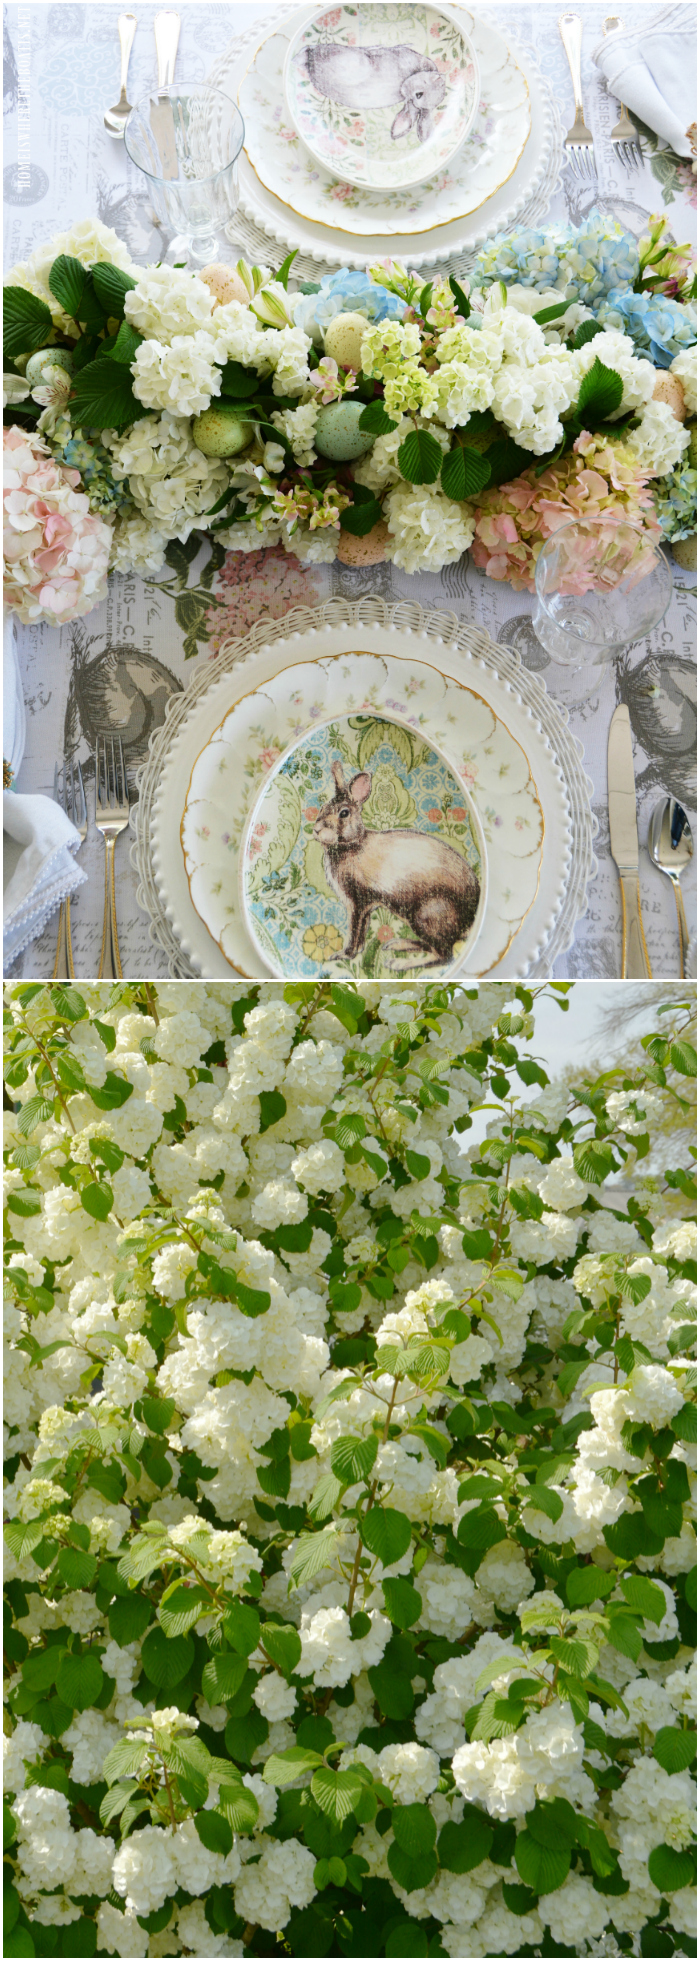 Fresh floral table runner for spring or Easter with hydrangeas, snowball viburnum and decorative eggs.